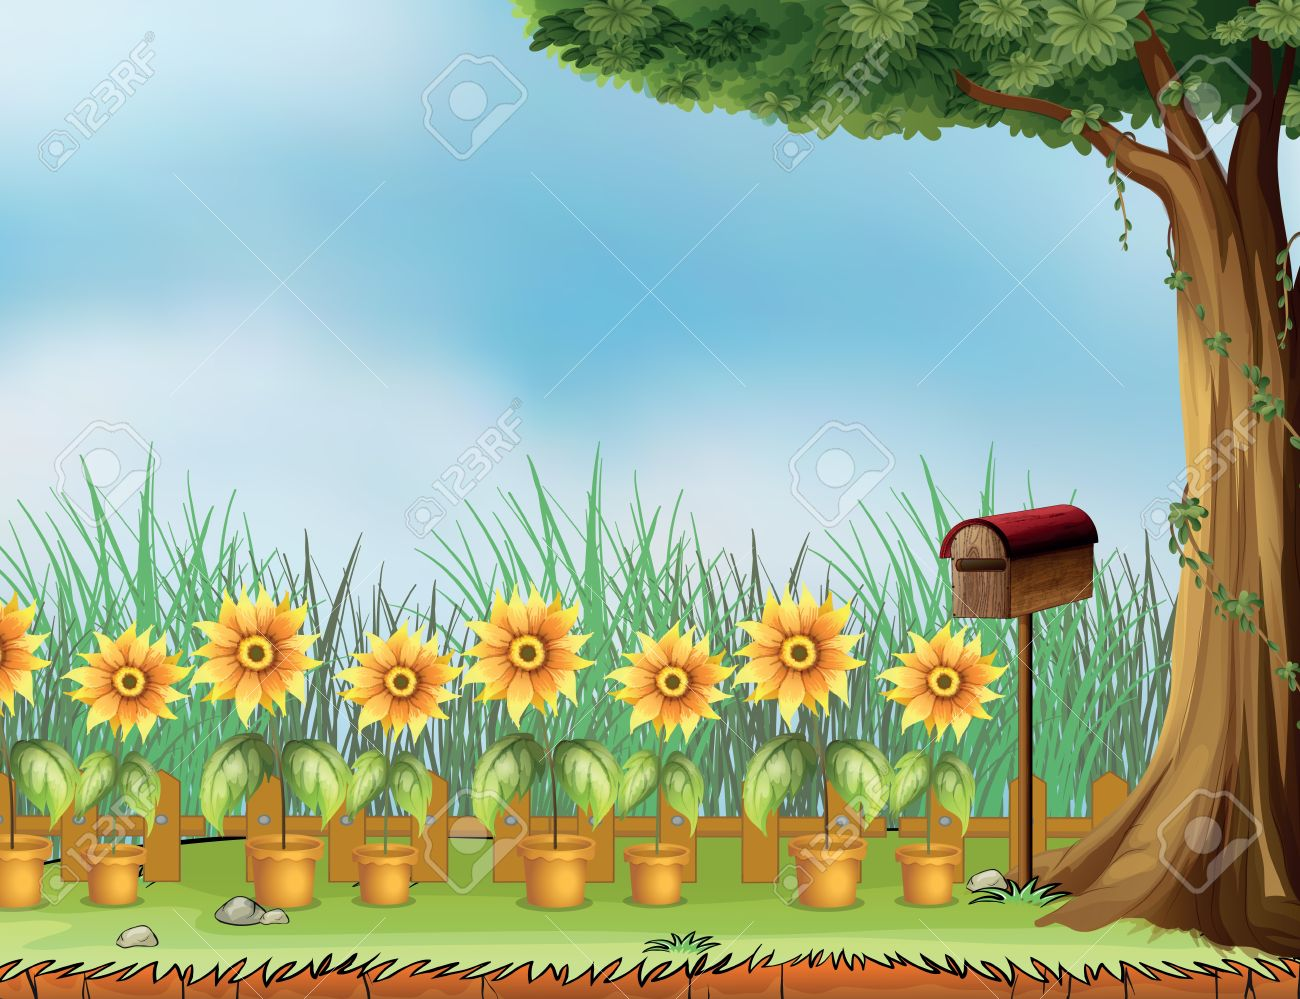 illustration of a letter box and flower pot in a garden royalty free cliparts vectors and stock illustration image 17896682 illustration of a letter box and flower pot in a garden